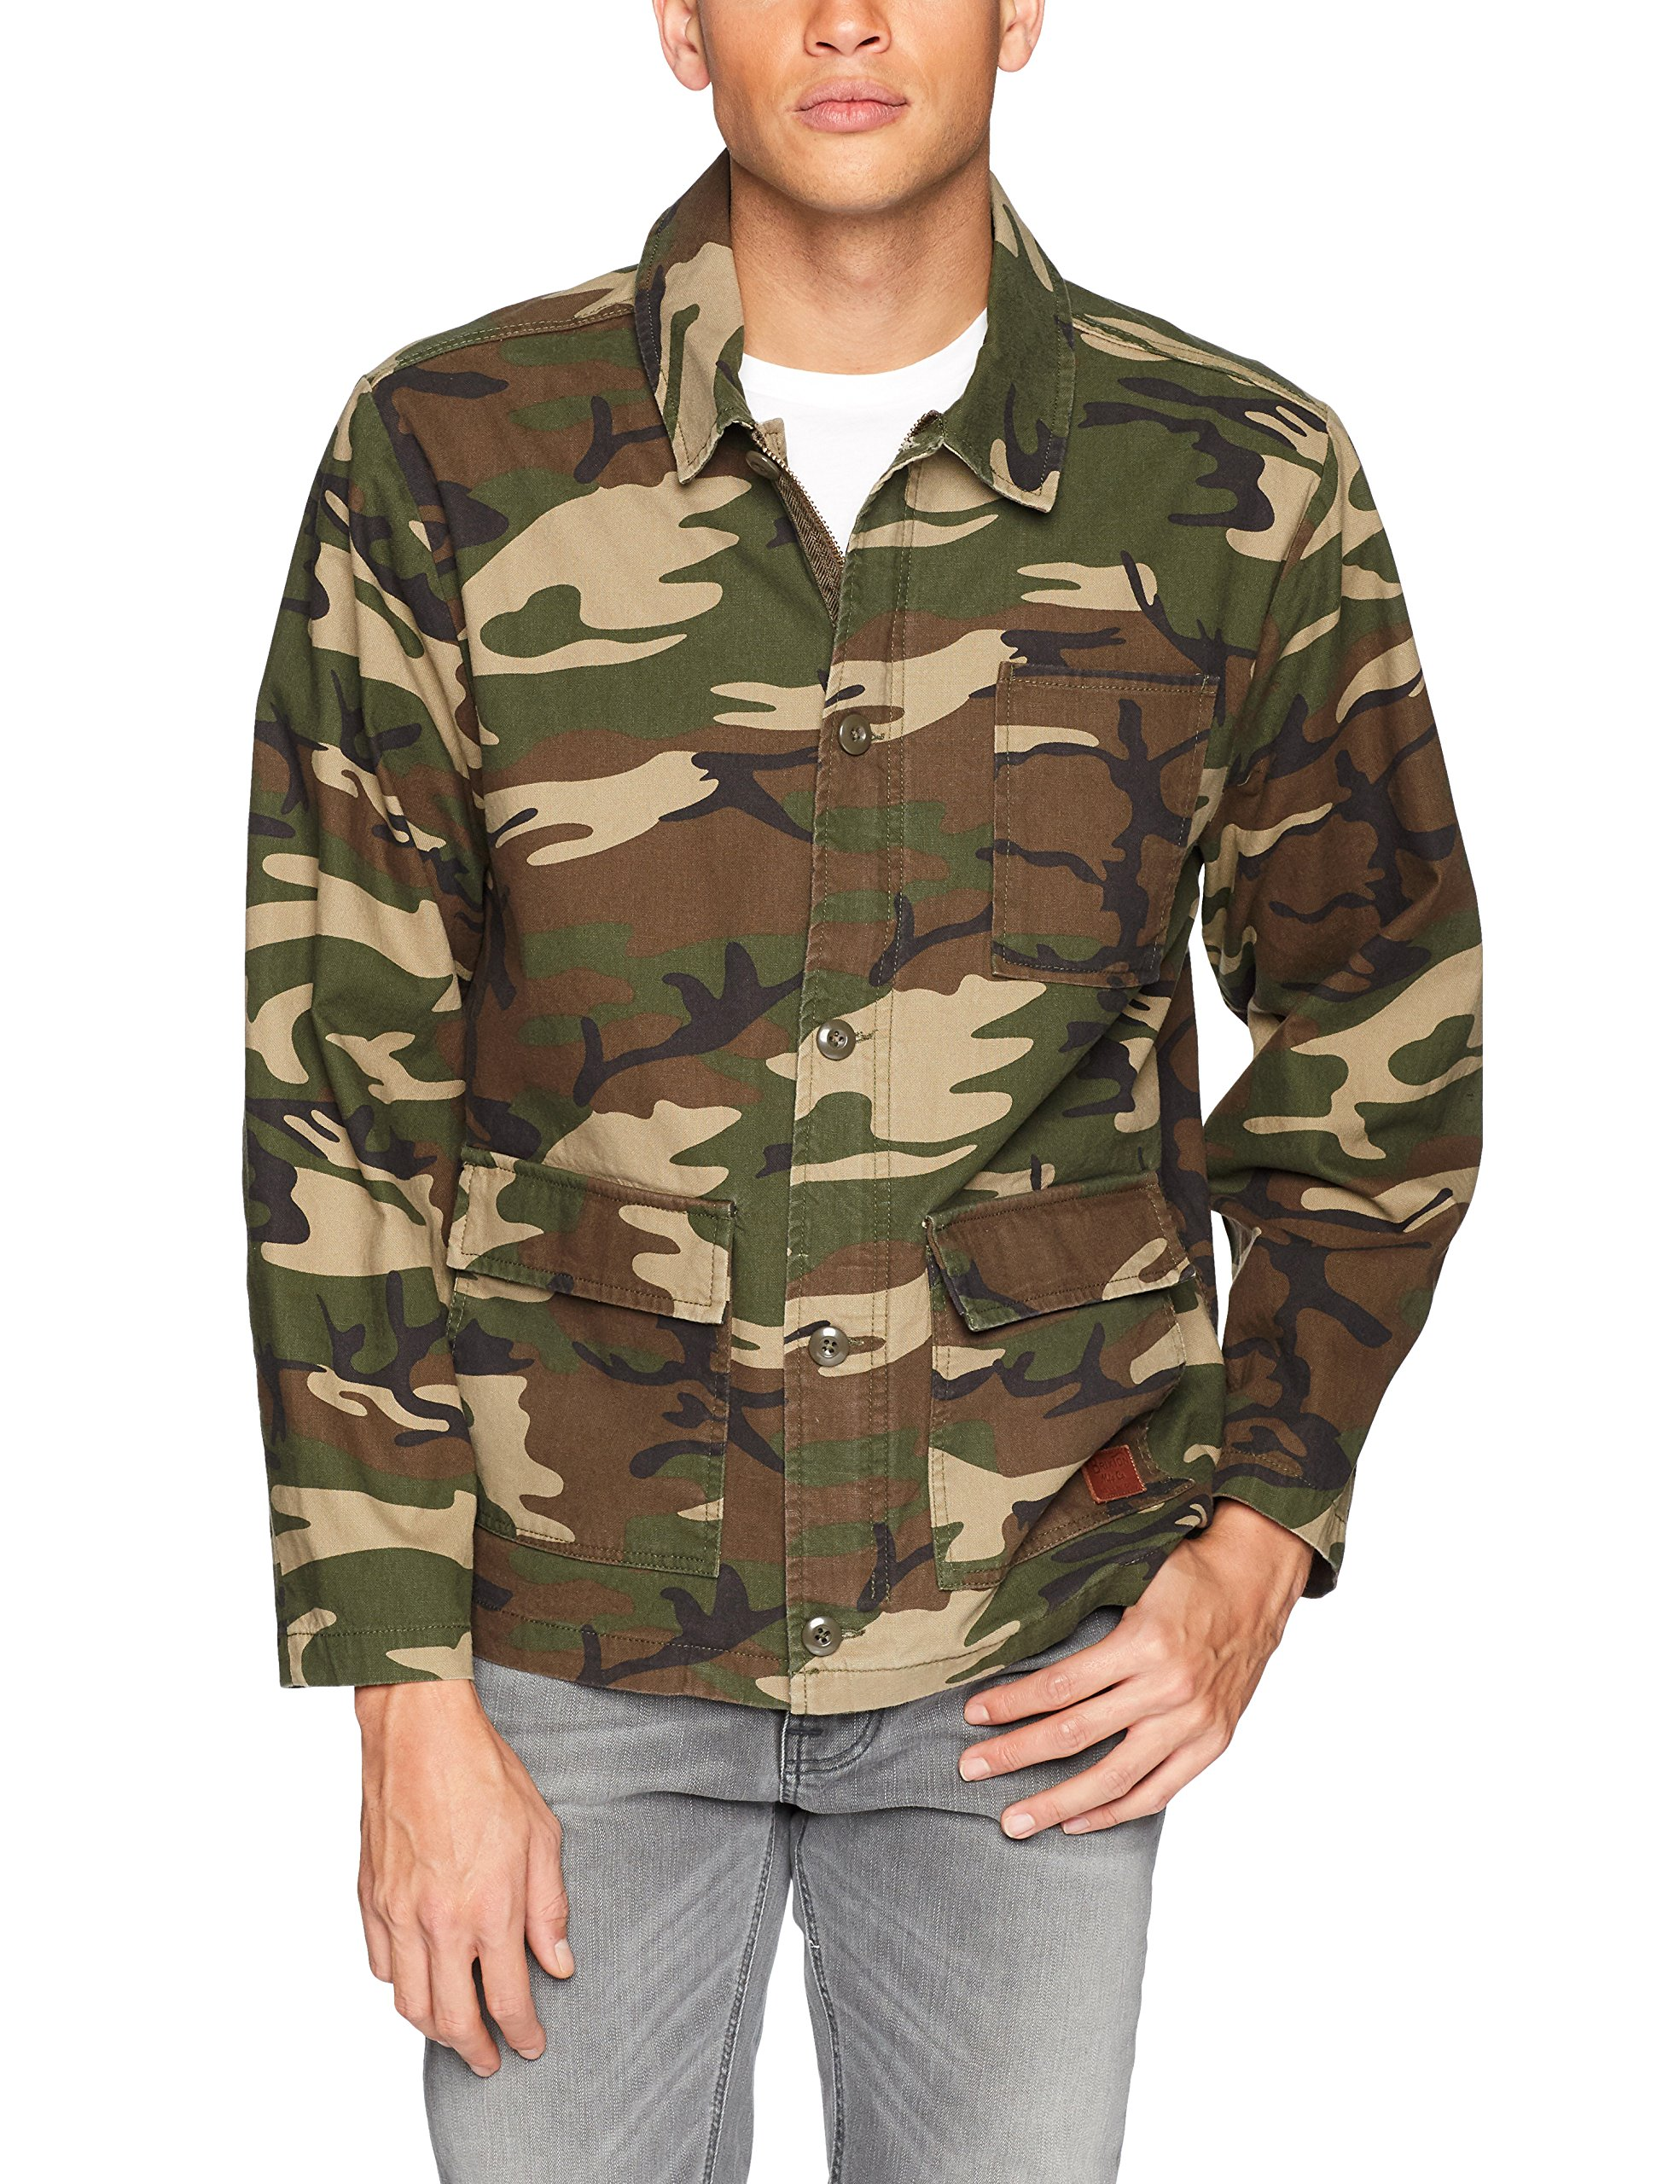 Brixton Men's Signal Relaxed Fit Chore Jacket, Camo, L by Brixton (Image #1)